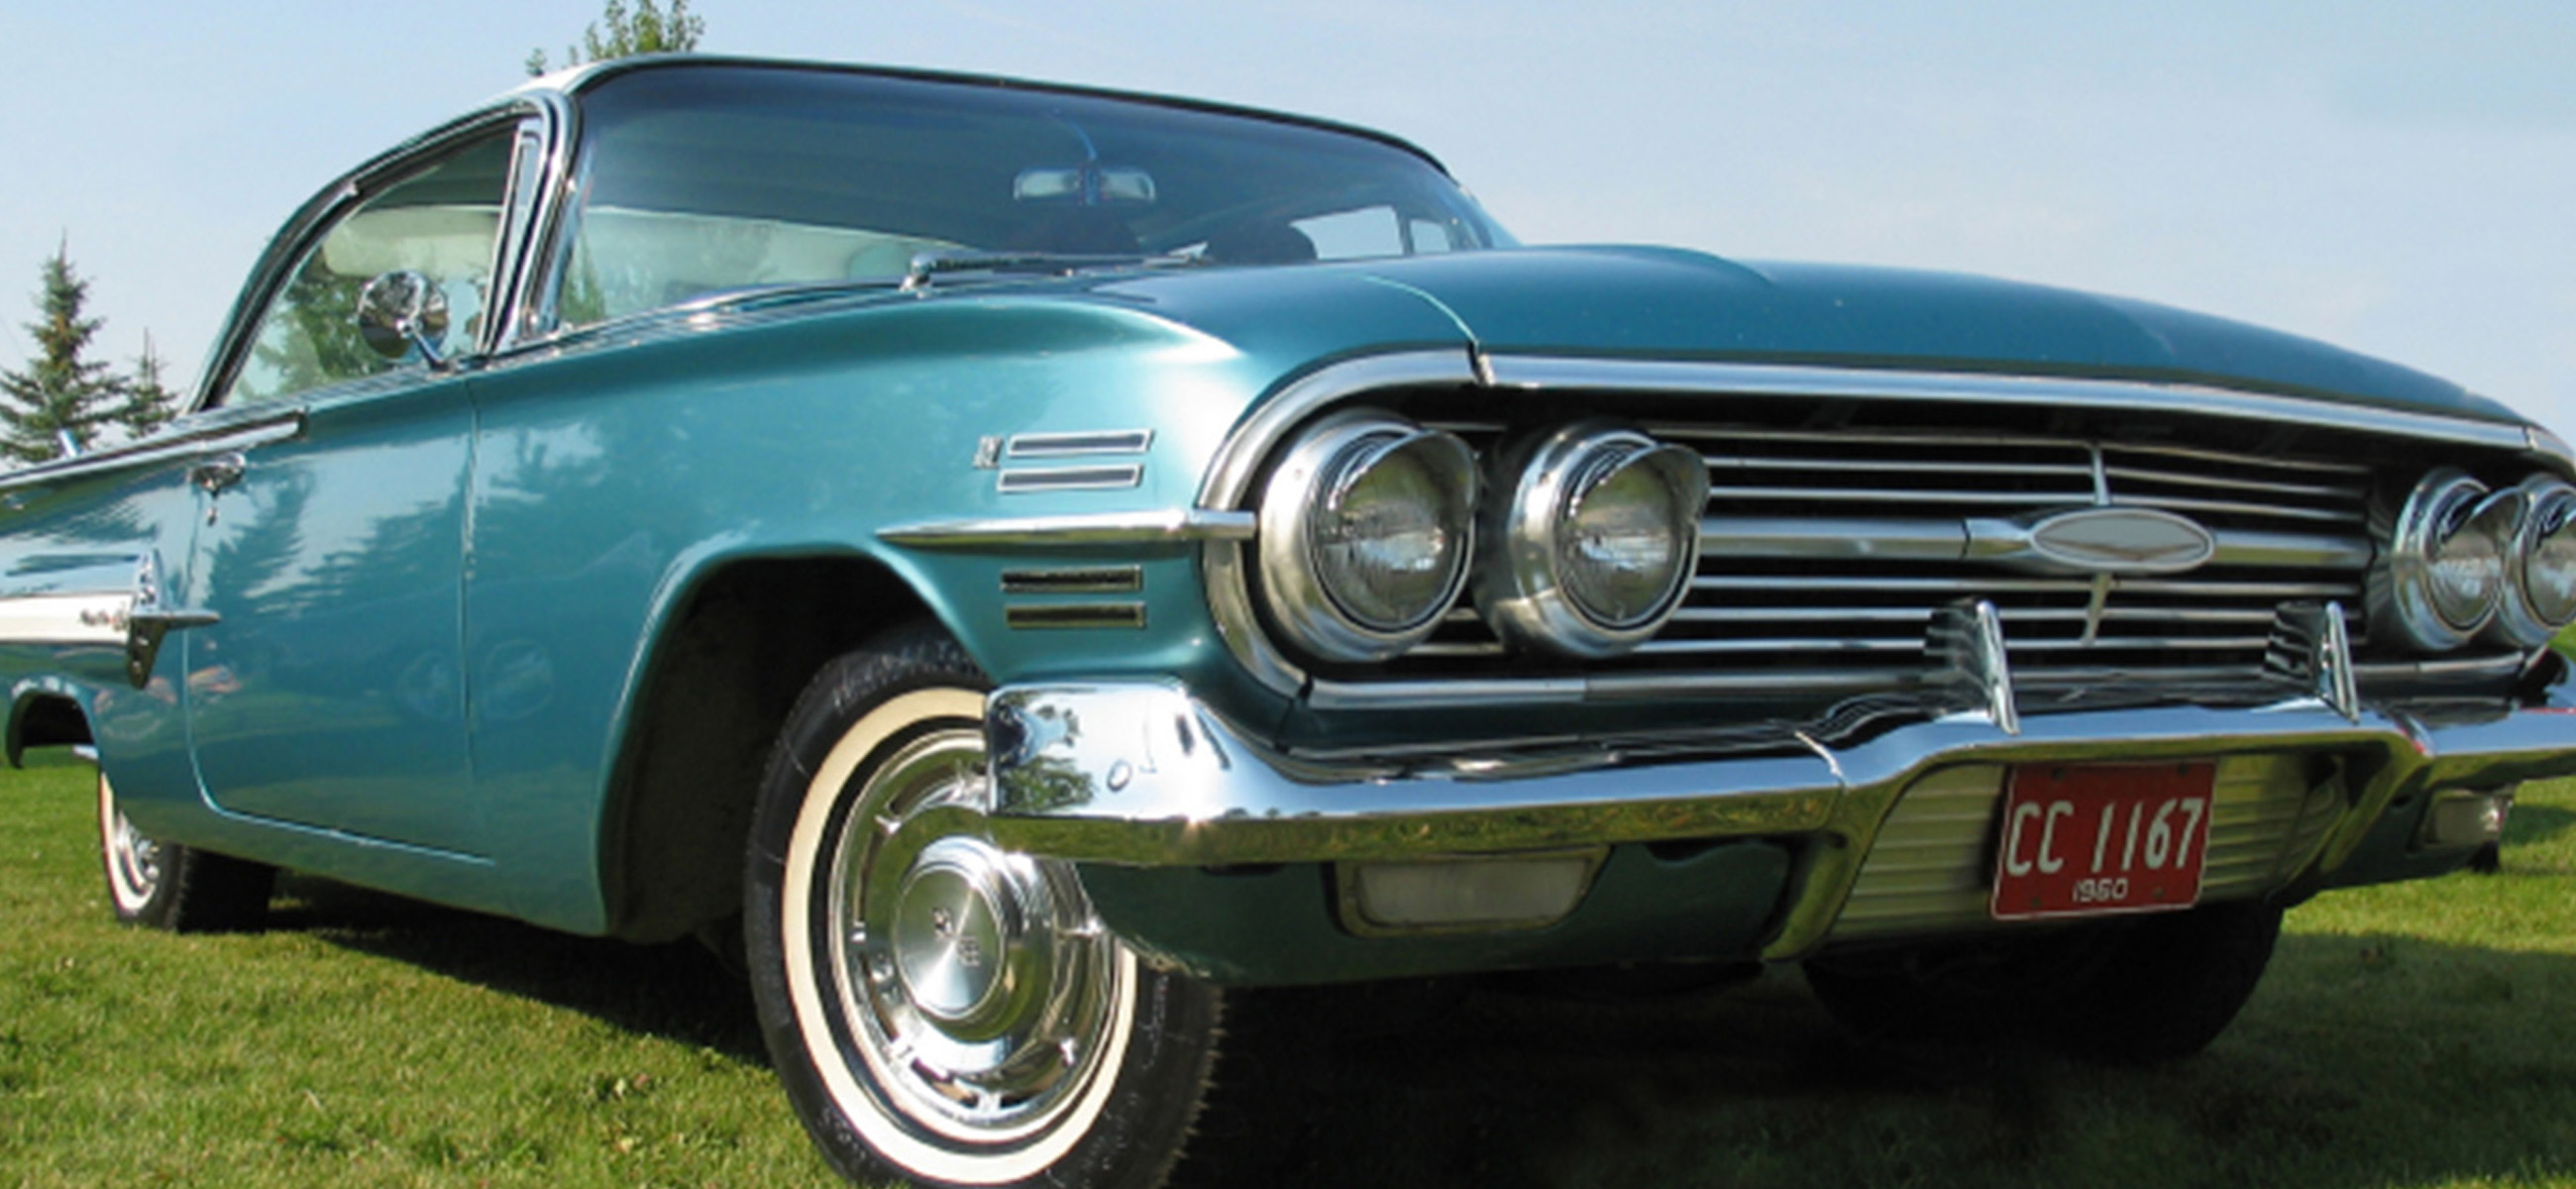 New Jersey Classic Car Insurance Coverage